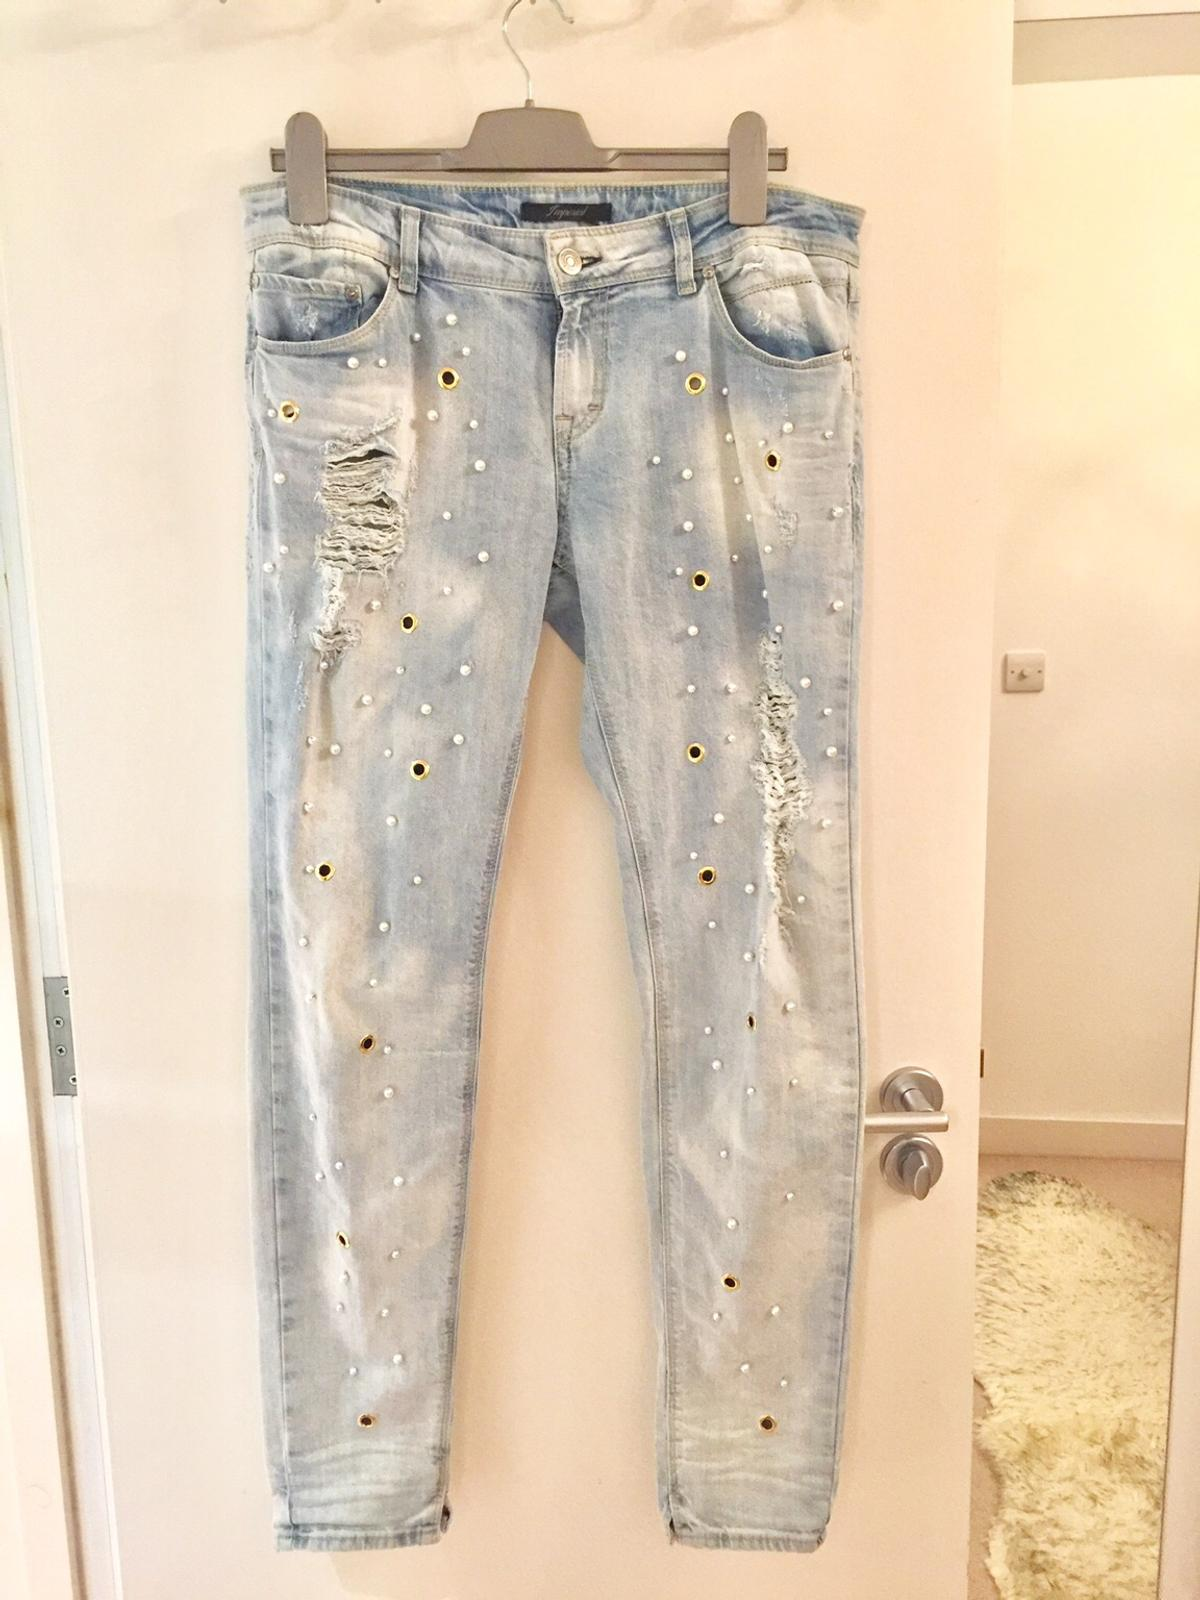 Beautiful colour distressed Italian jeans Decorated with pearls Size Medium/large Will fit 12-14 uk New without tags Paid £150 in boutique I can dispatch for extra £4 Sensible offers welcome